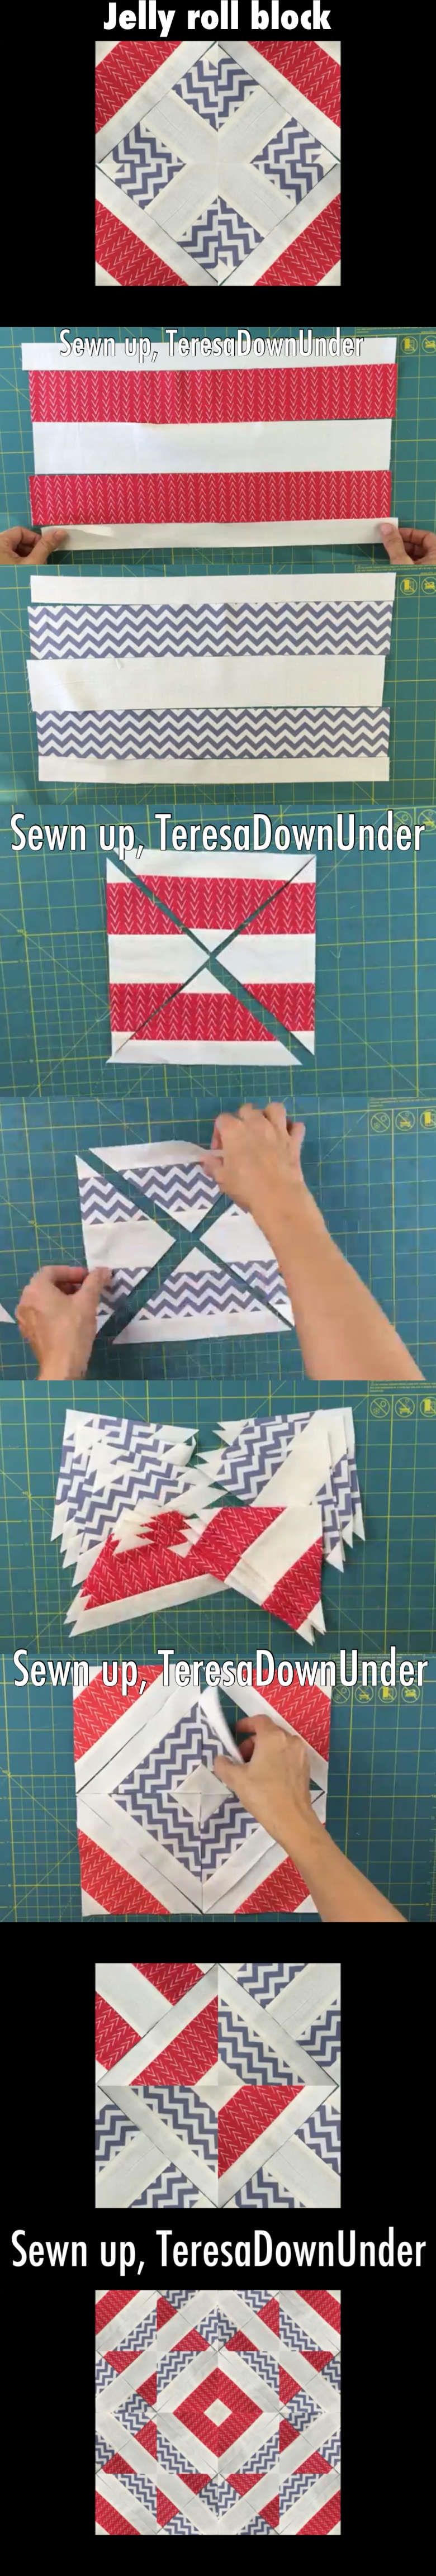 Jelly roll block - quick and easy video tutorial